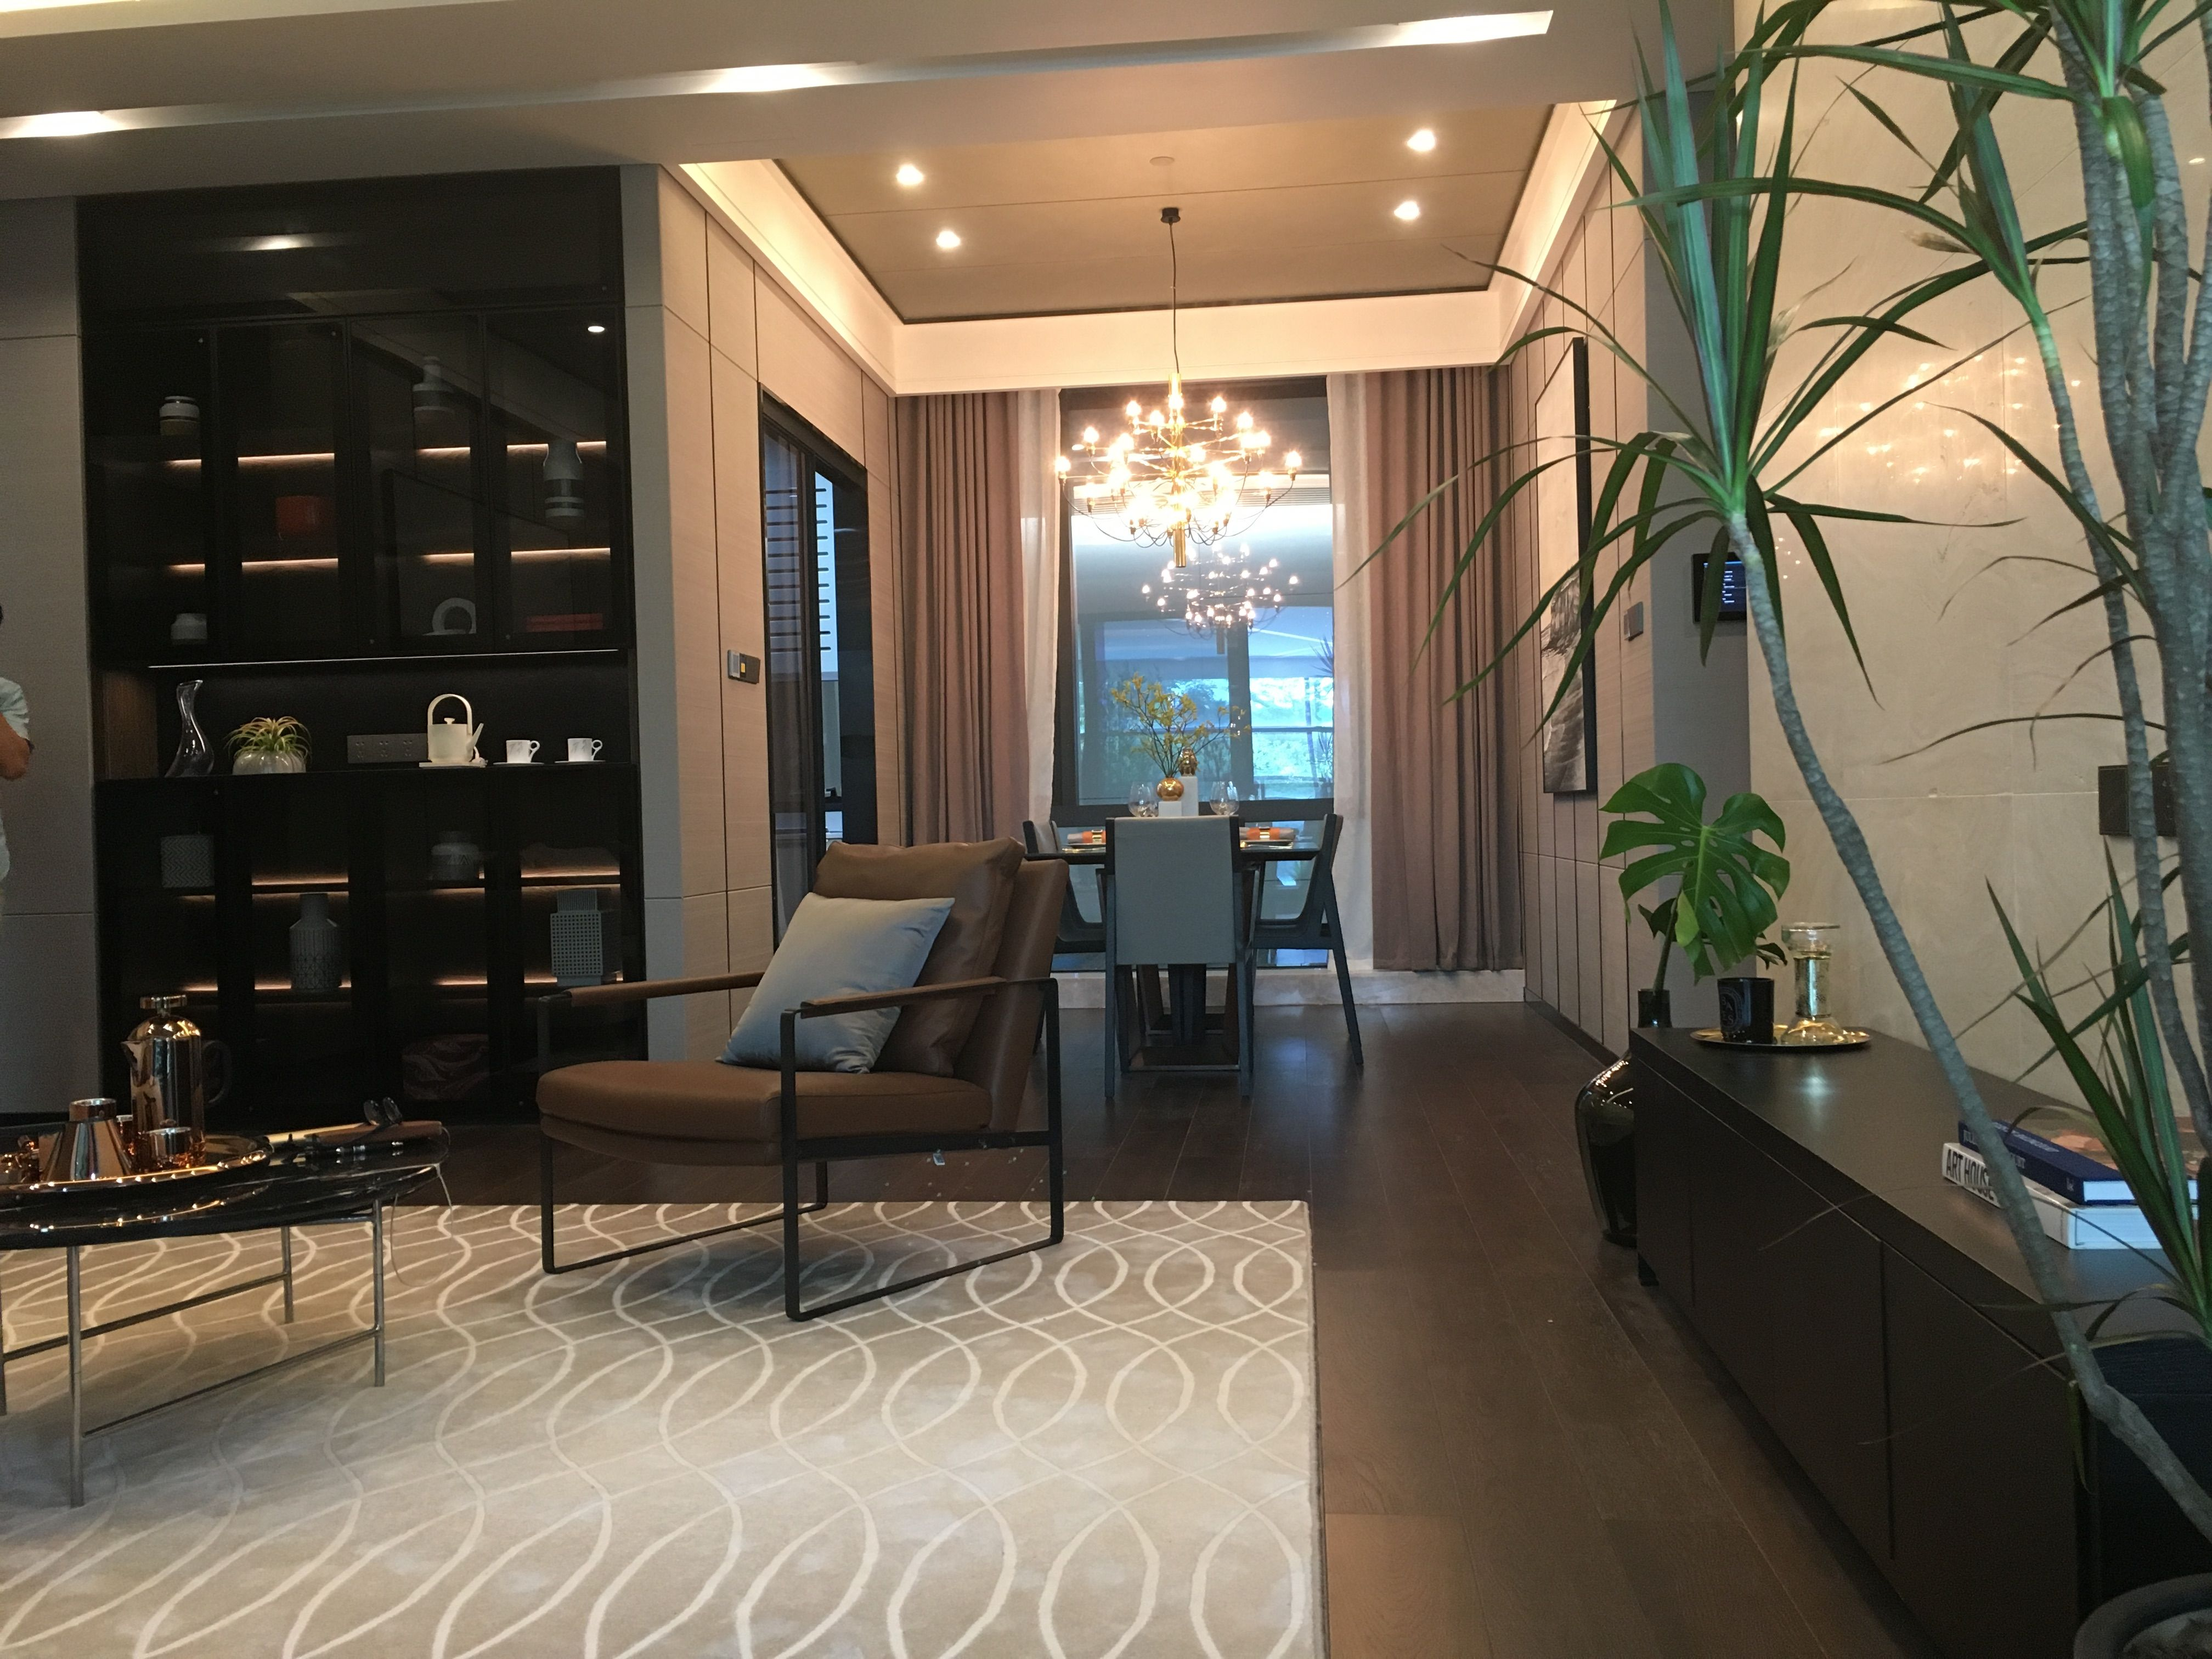 Pin by Victoria Line on living room Orlando lakes